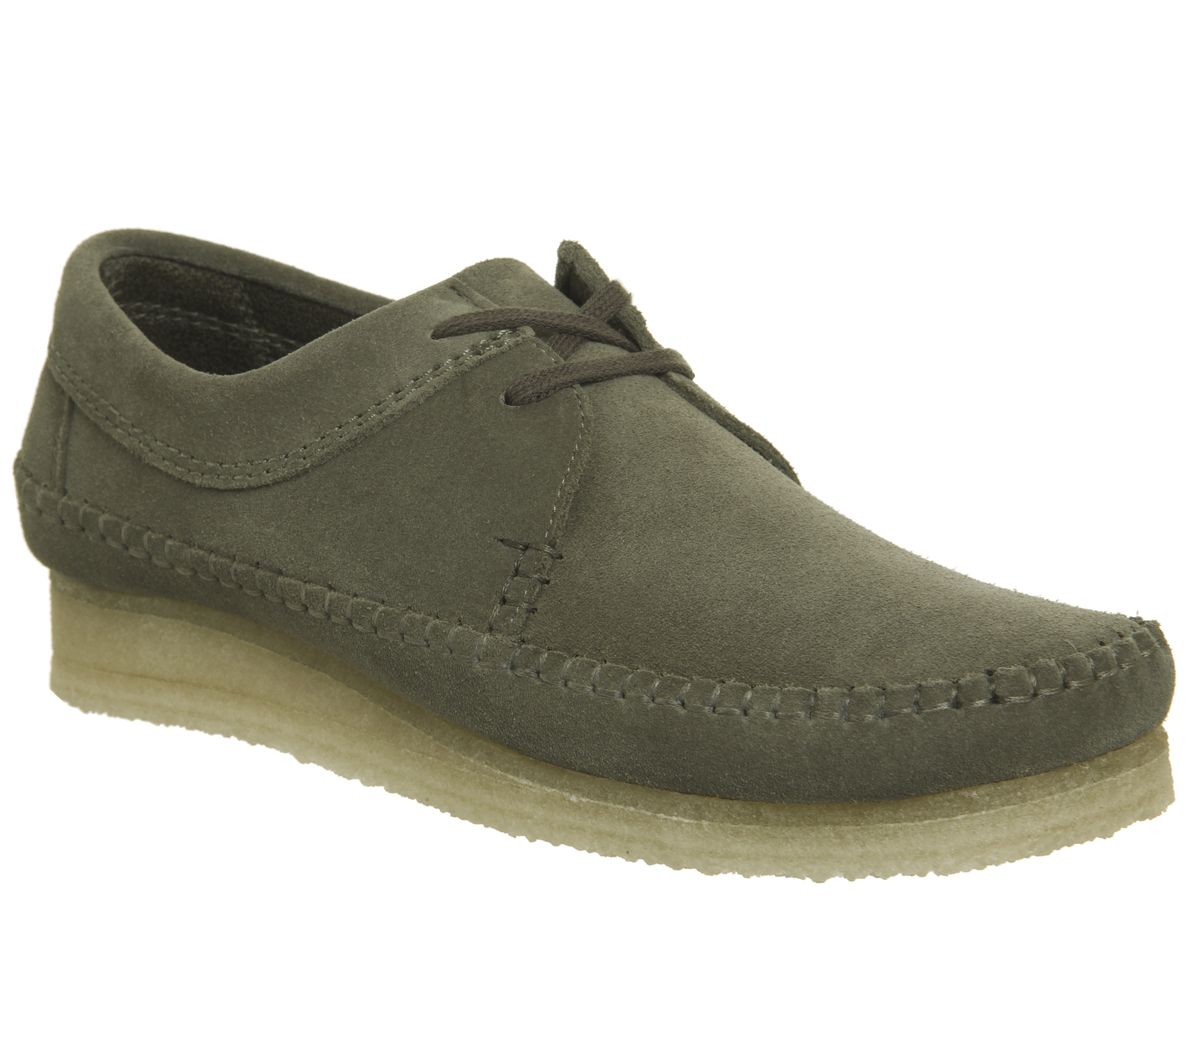 153bff65 Clarks Originals Weaver Shoes Olive Suede - Casual